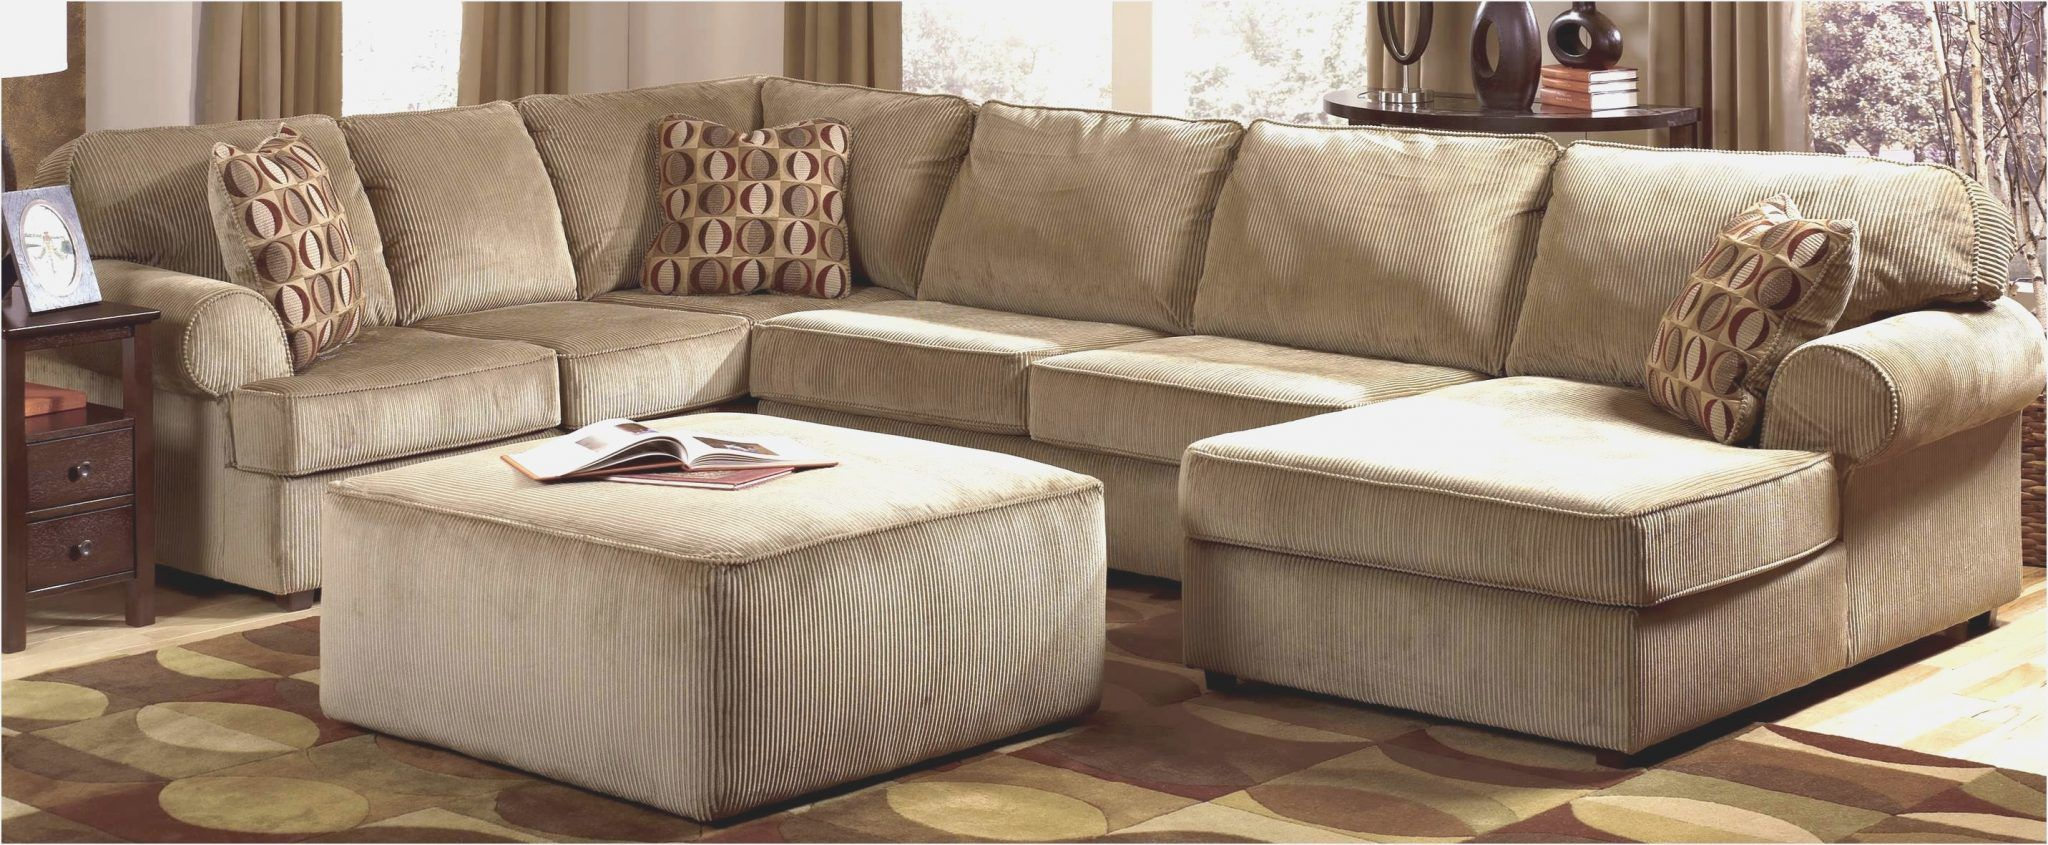 Small Scale Sectional Sofa   Find Small Scale Sectional Sofas, Small Scale  Sectional Sofa Leather, Small Scale Sectional Sofa Recliner, ...